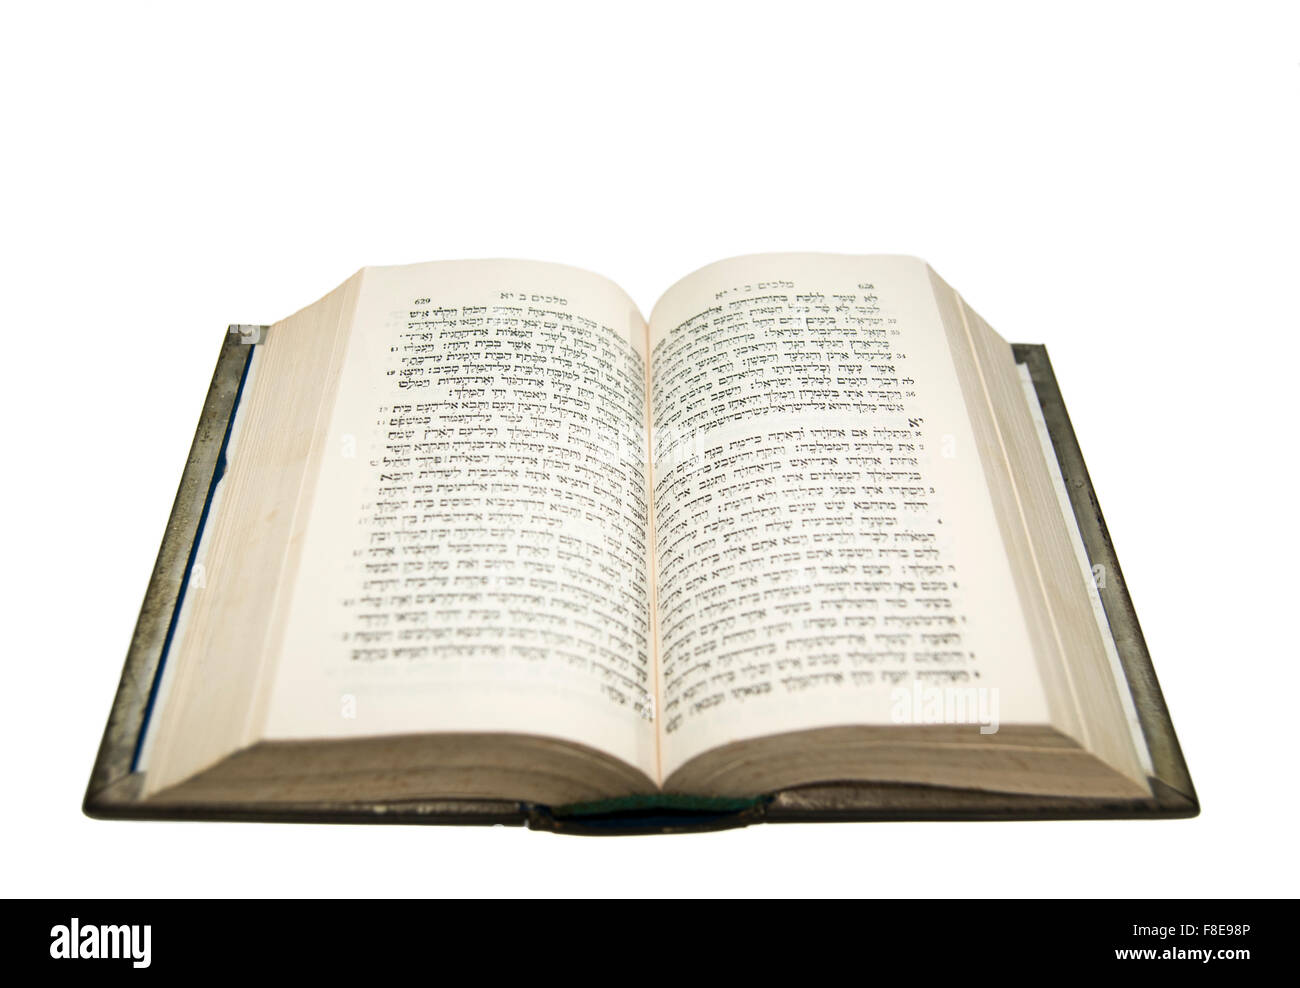 Open bible with the original Hebrew text - Stock Image